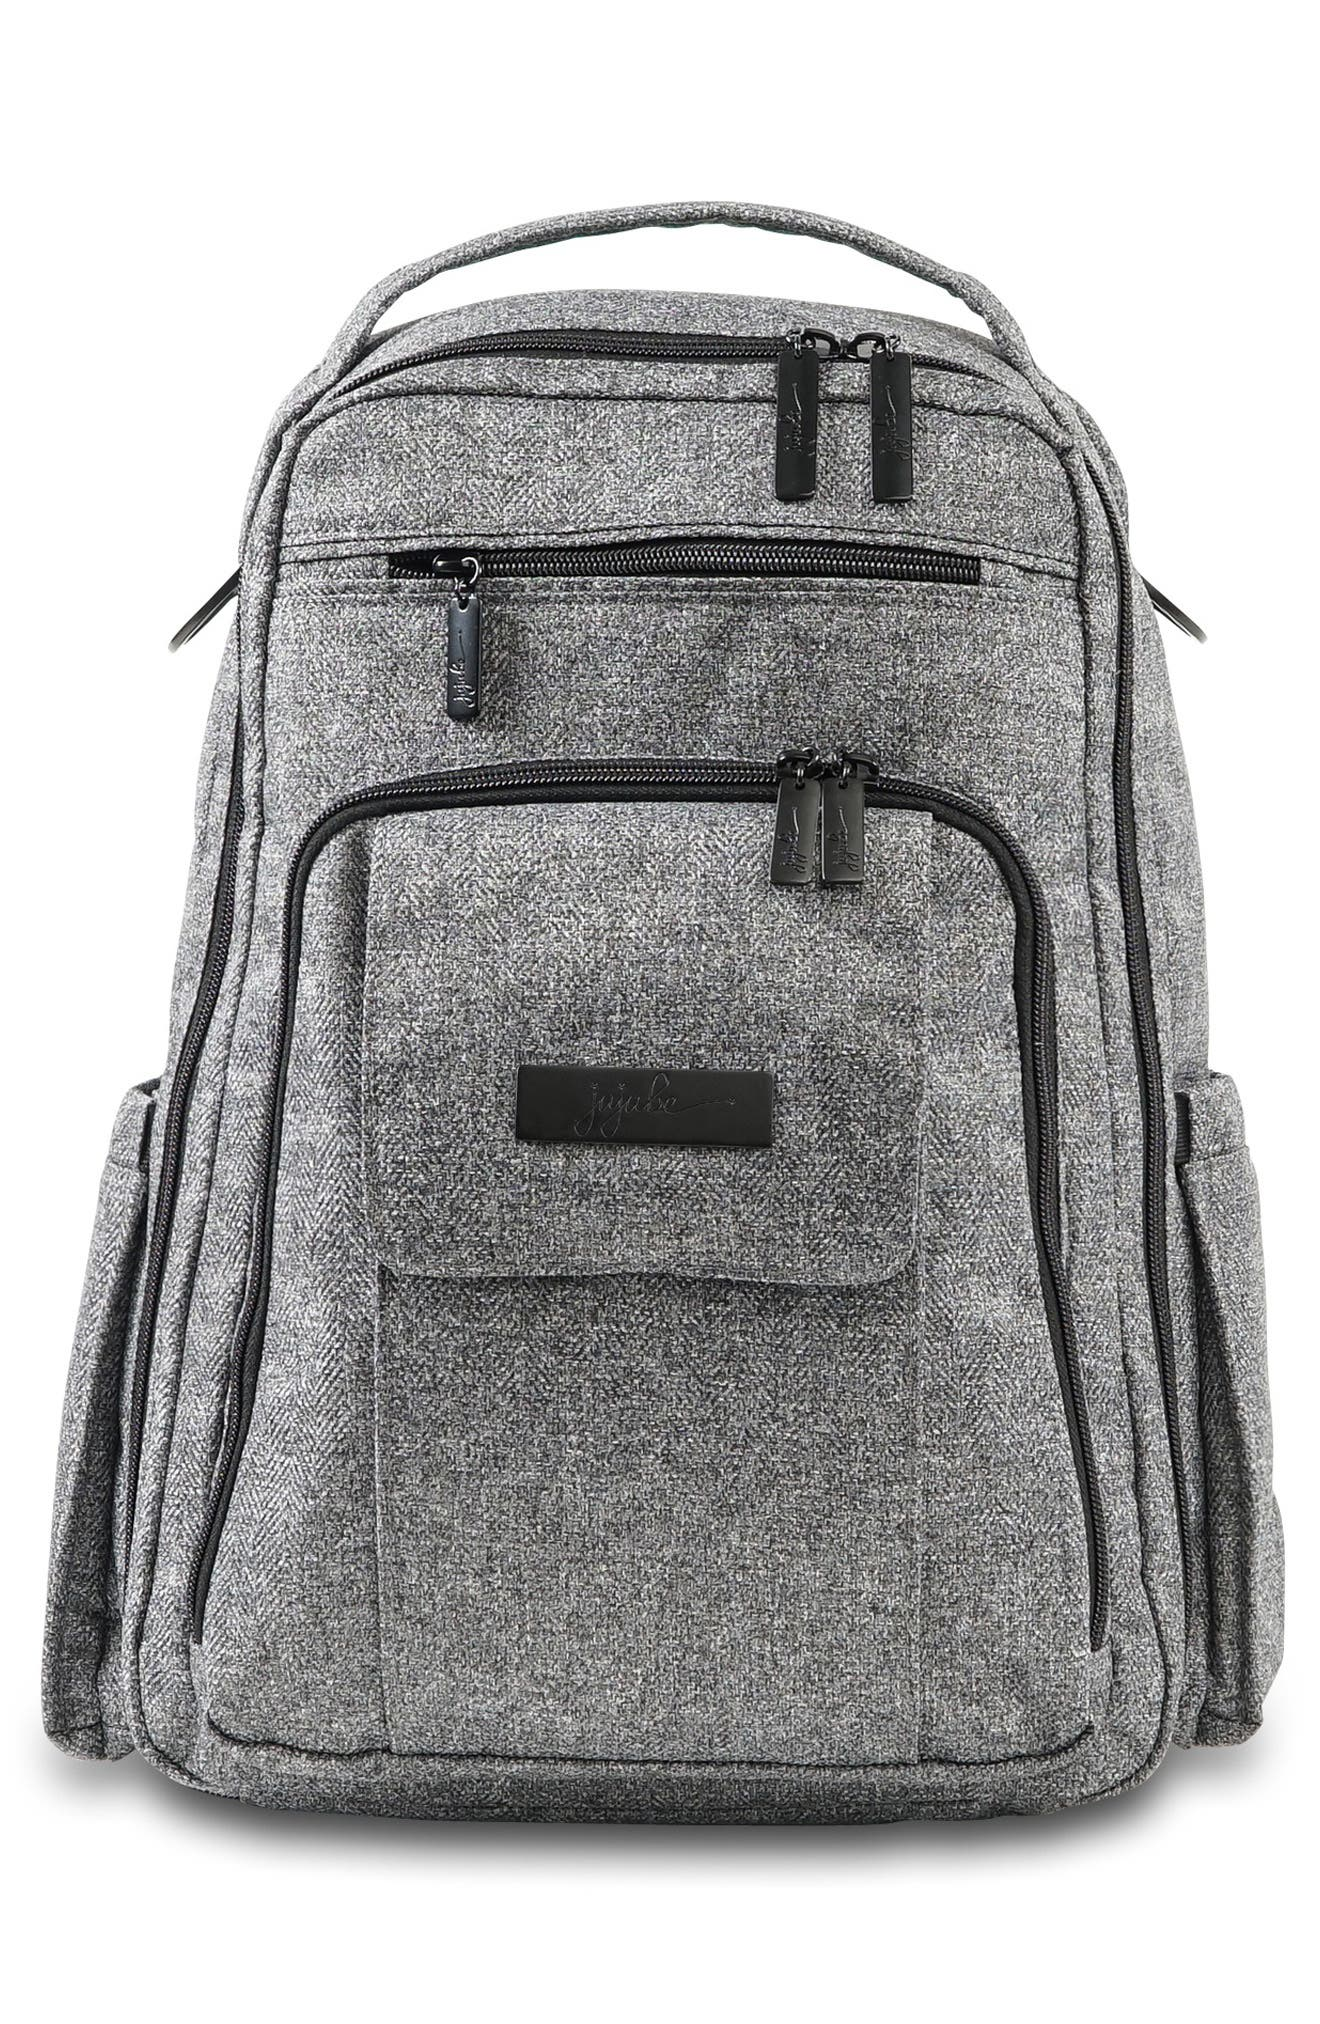 'Be Right Back - Onyx Collection' Diaper Backpack,                         Main,                         color, GRAY MATTER